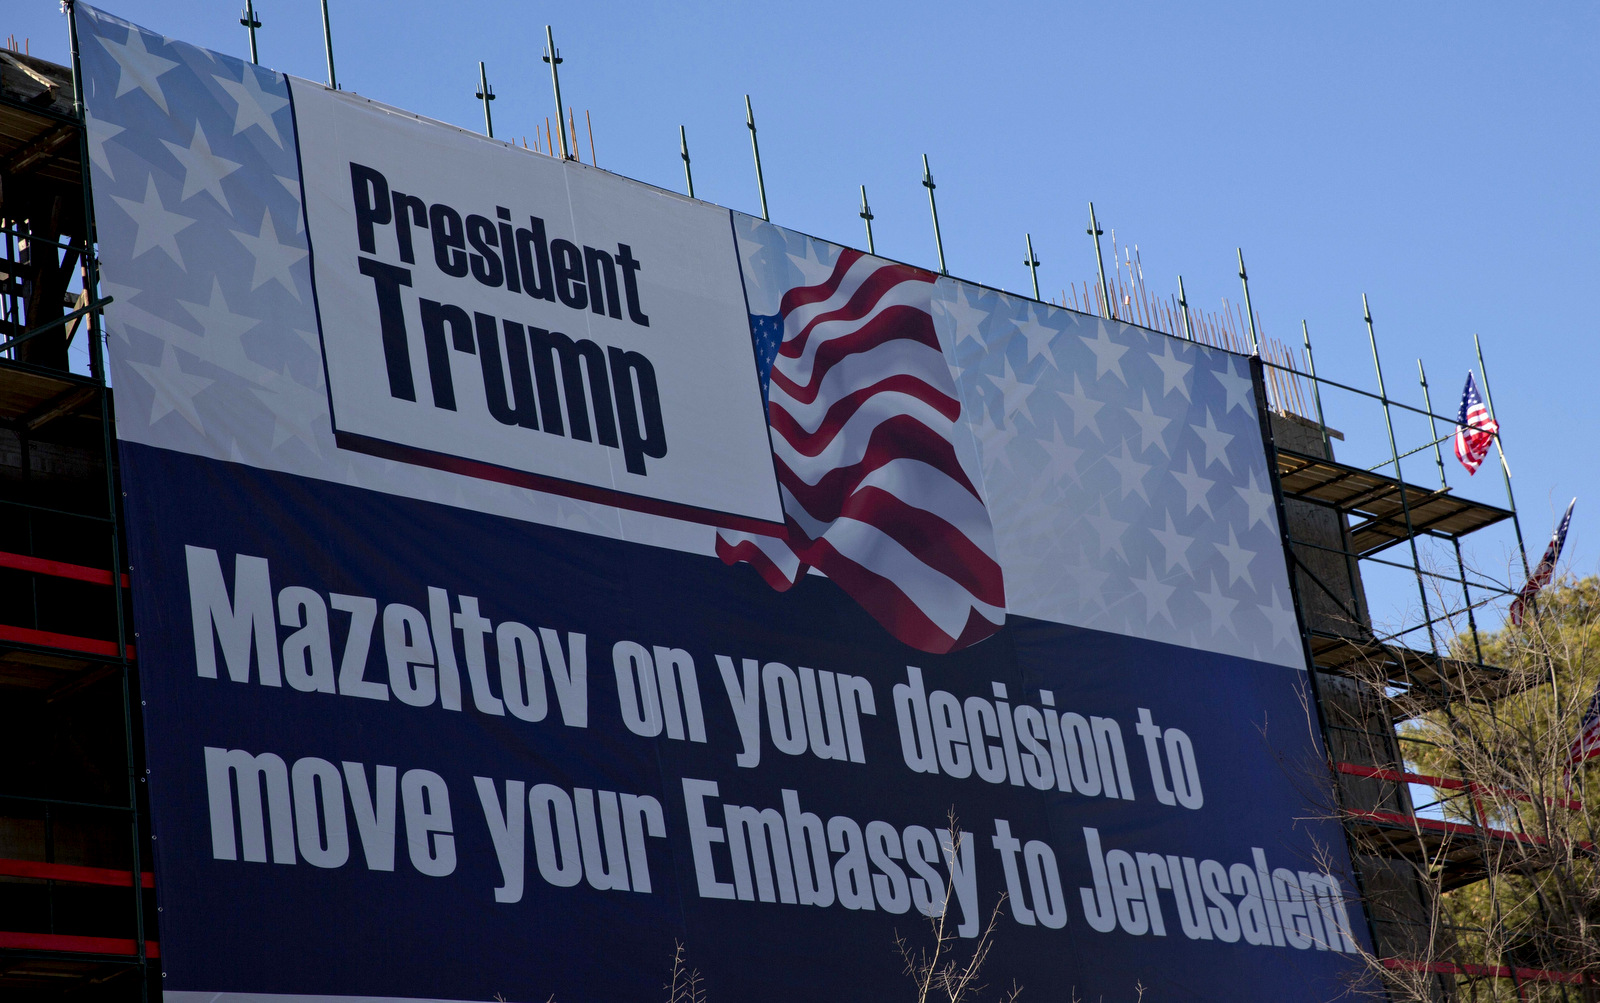 A sign hangs on a building under construction in Jerusalem congratulating U.S. President Donald Trump, Friday, Jan. 20, 2017. Trump has vowed to move the U.S. embassy from Tel Aviv to Jerusalem. (AP/Ariel Schalit)